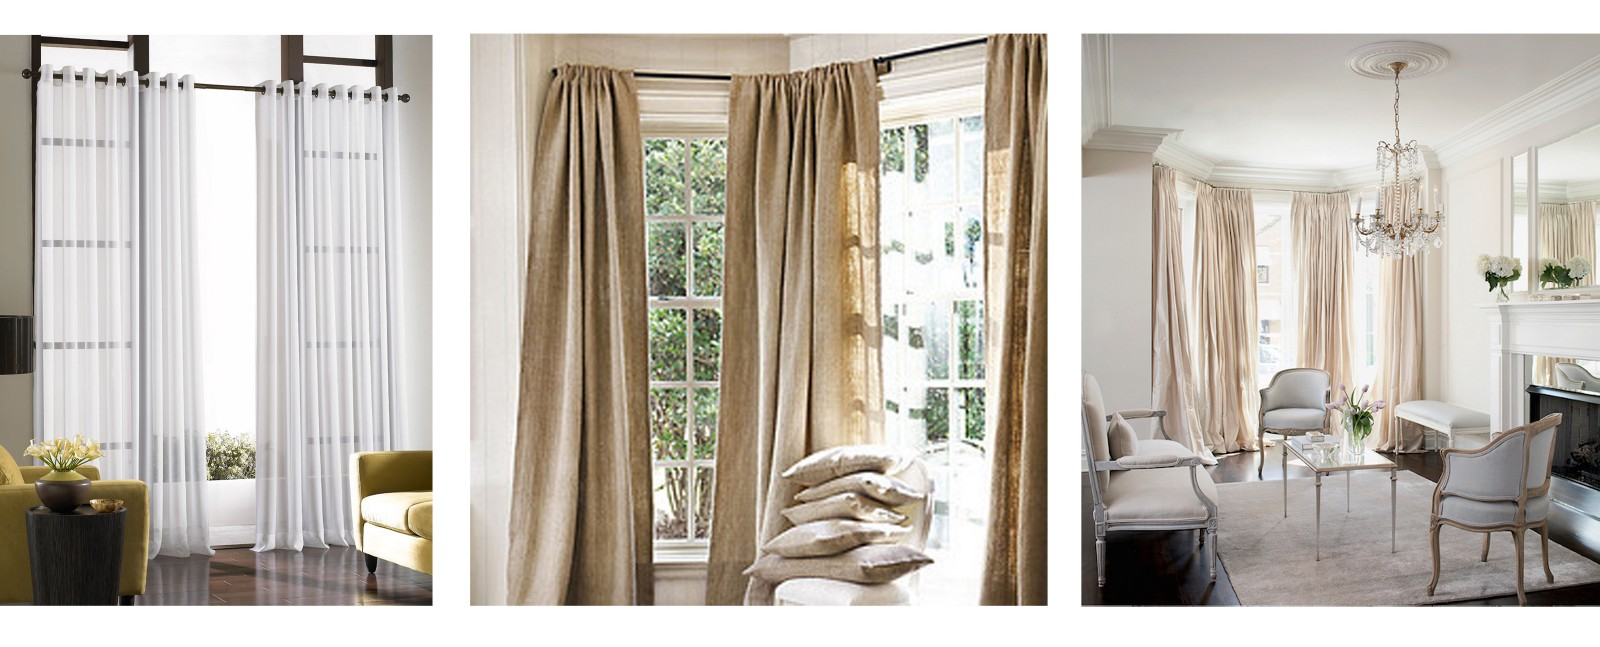 Measuring Curtain Sizes Needed For Each Window Varies Greatly According To  The Type Of Curtain Needed, Window Size, And Type And Weight Of Curtain.